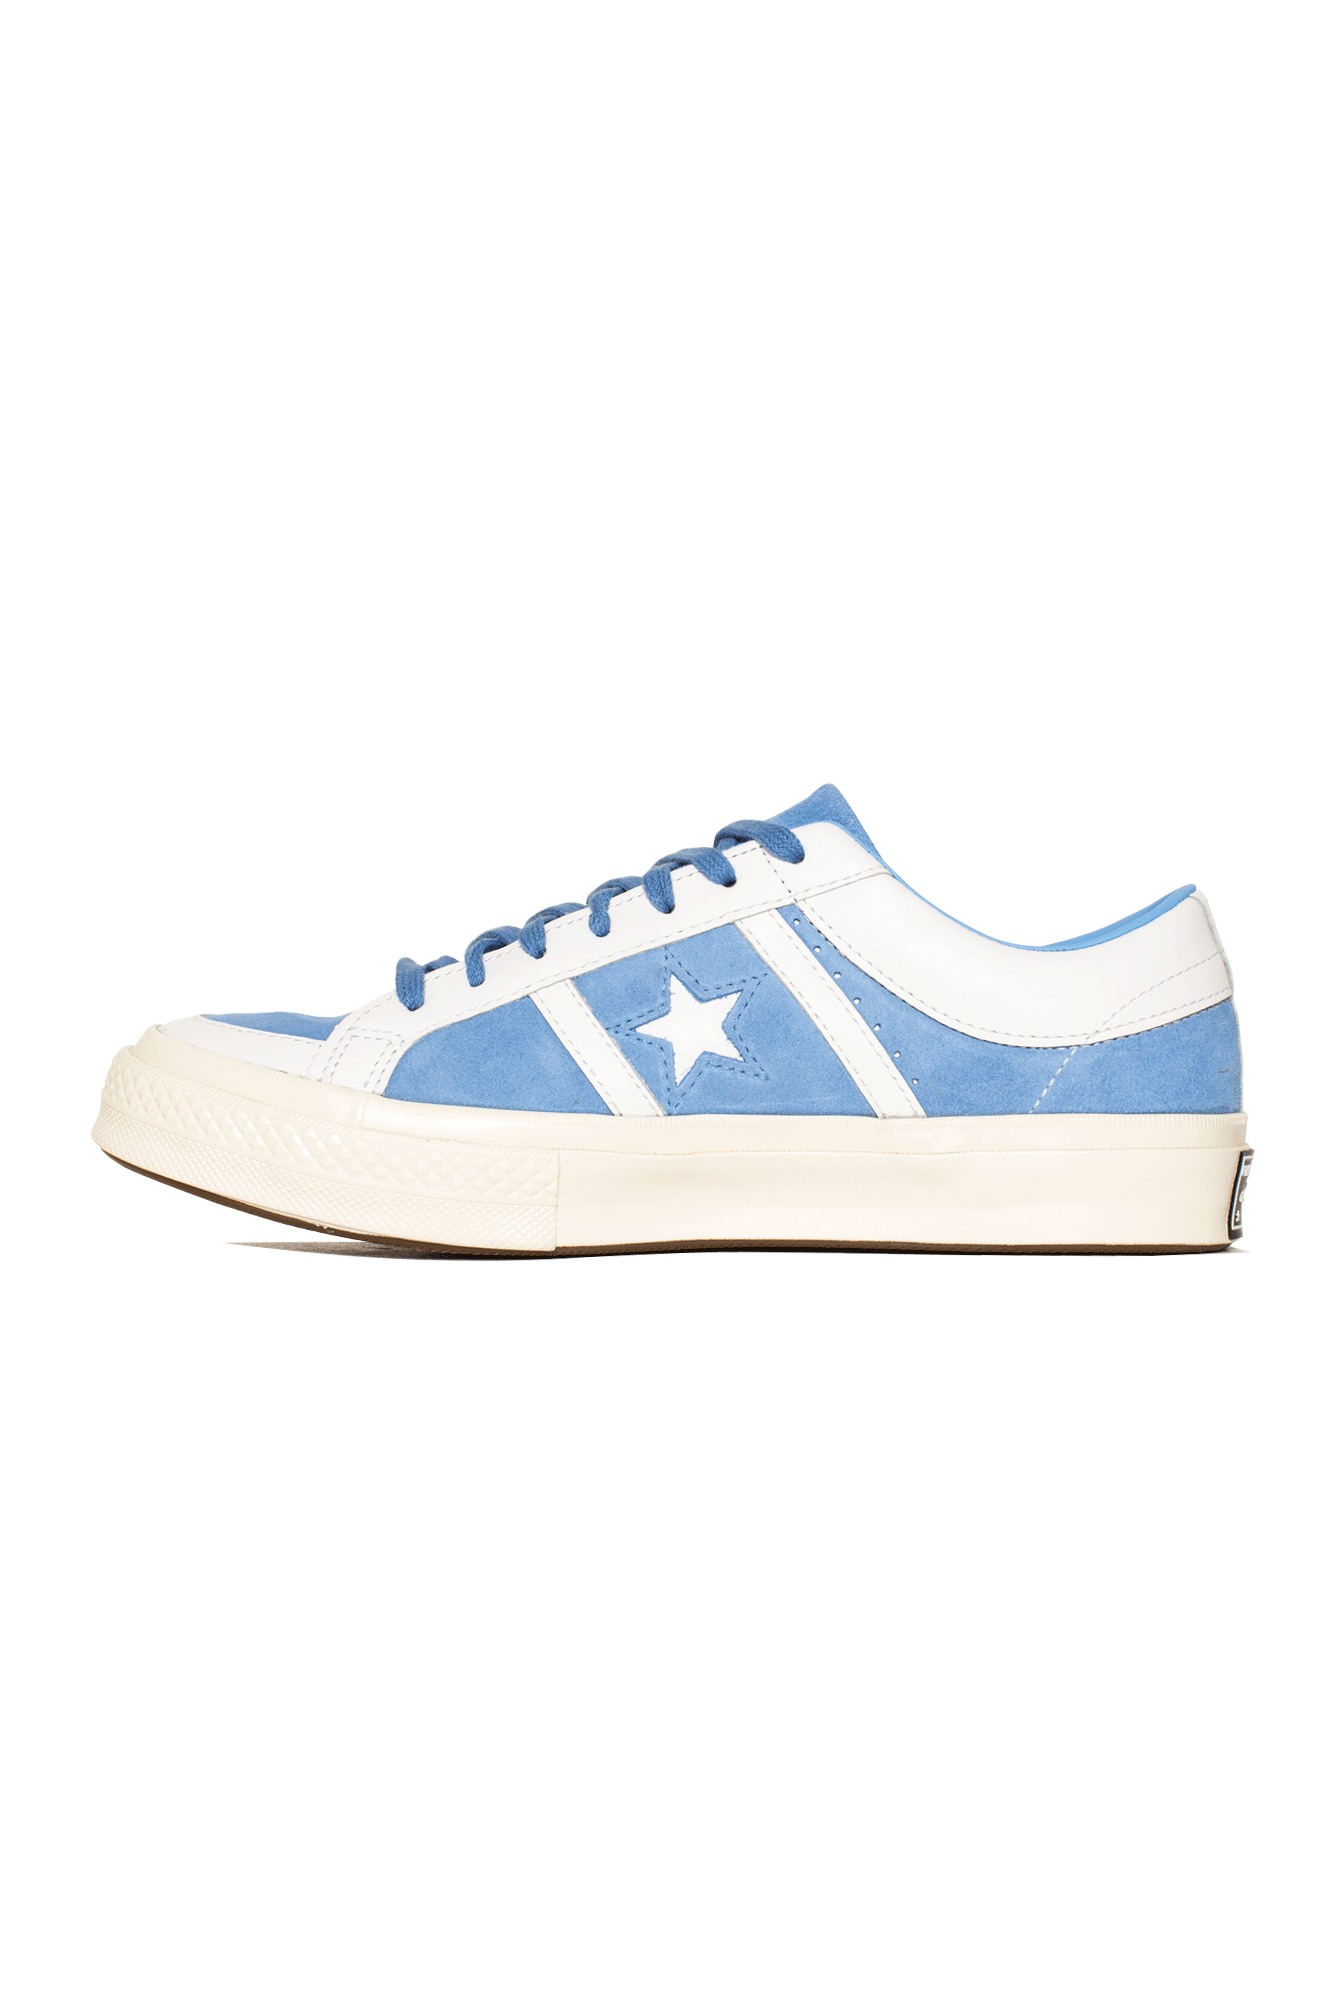 Puma Blue Star · Fresh sneakers and vintage trainers. IN